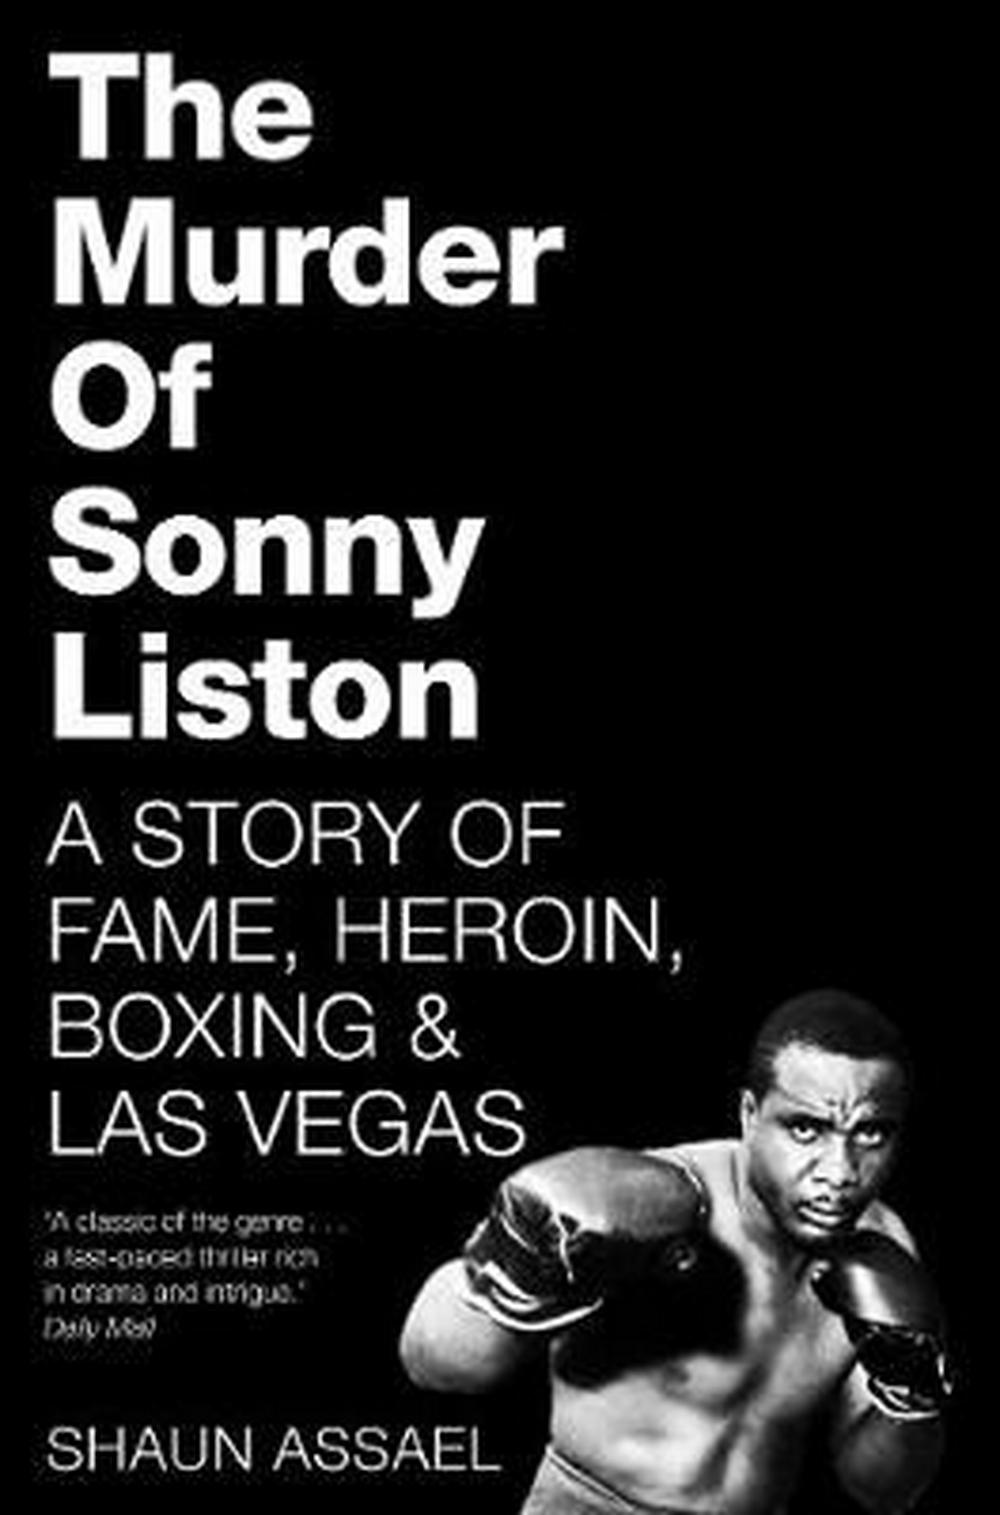 The Murder of Sonny ListonA Story of Fame, Heroin, Boxing & Las Vegas